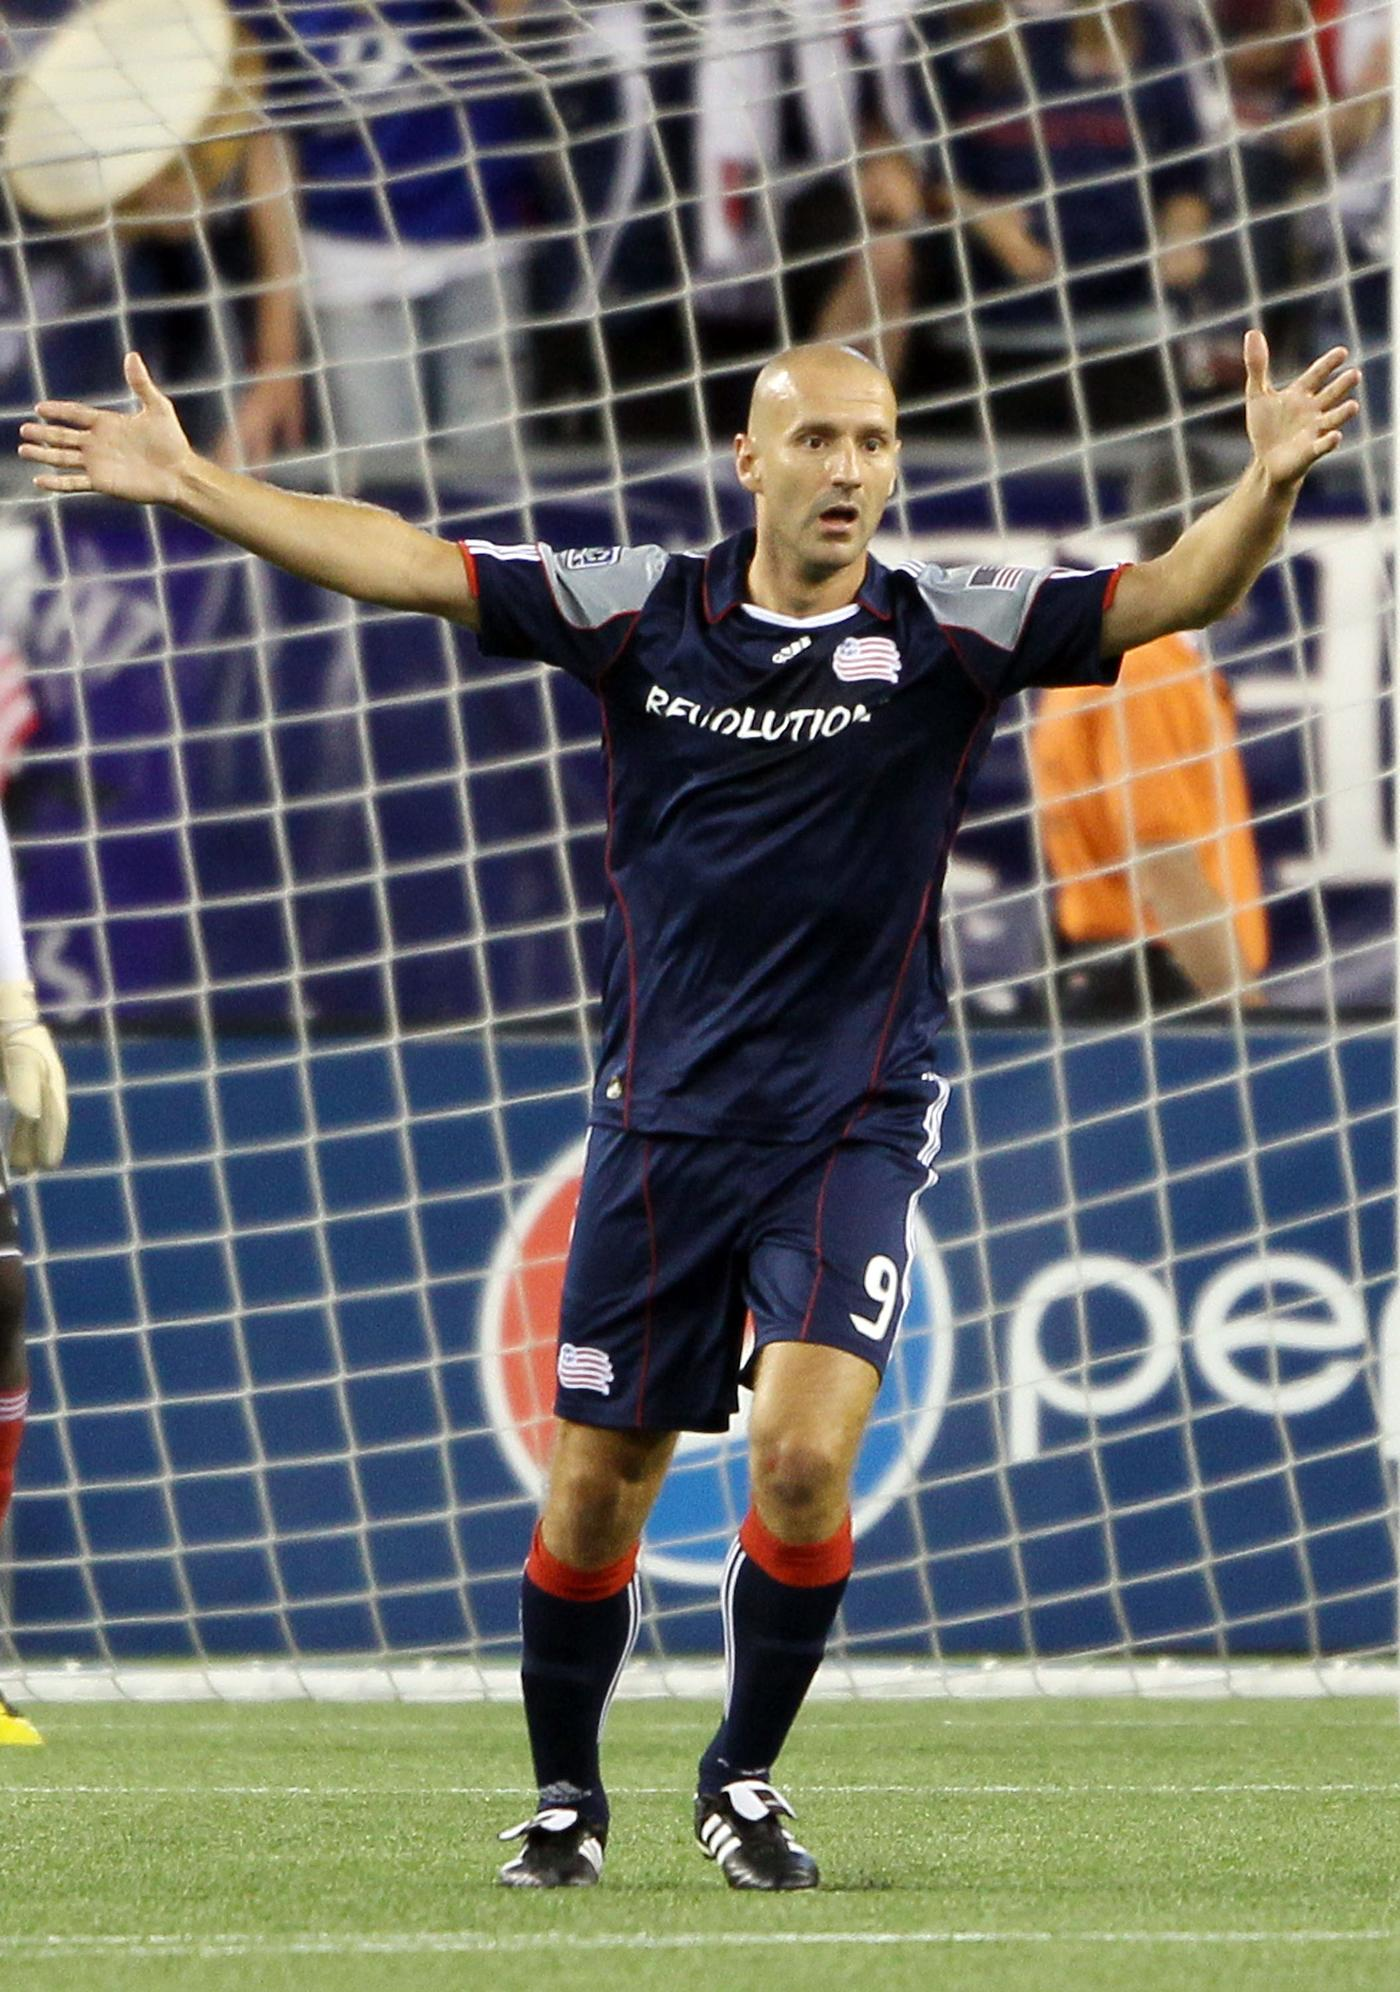 Serbian forward Ilija Stolica is expected to make his first start with the Revs on Saturday against Houston